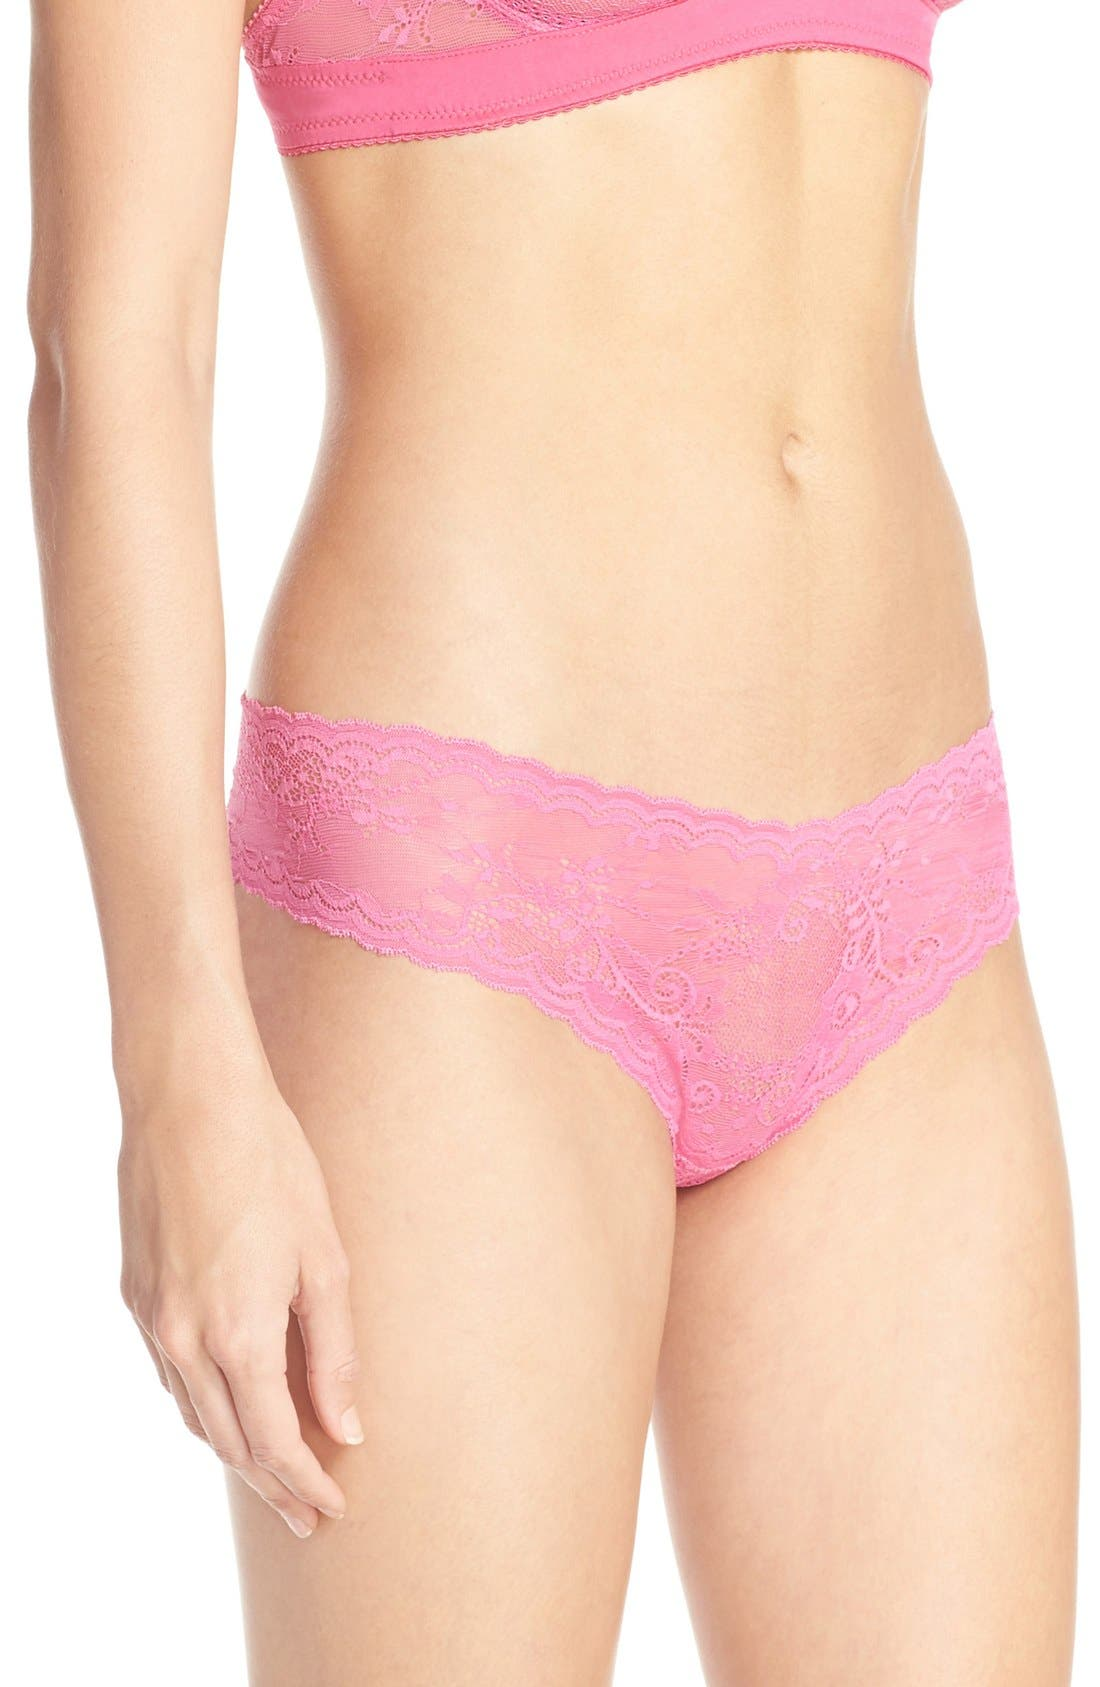 'Trenta' Low Rise Lace Thong,                             Alternate thumbnail 161, color,